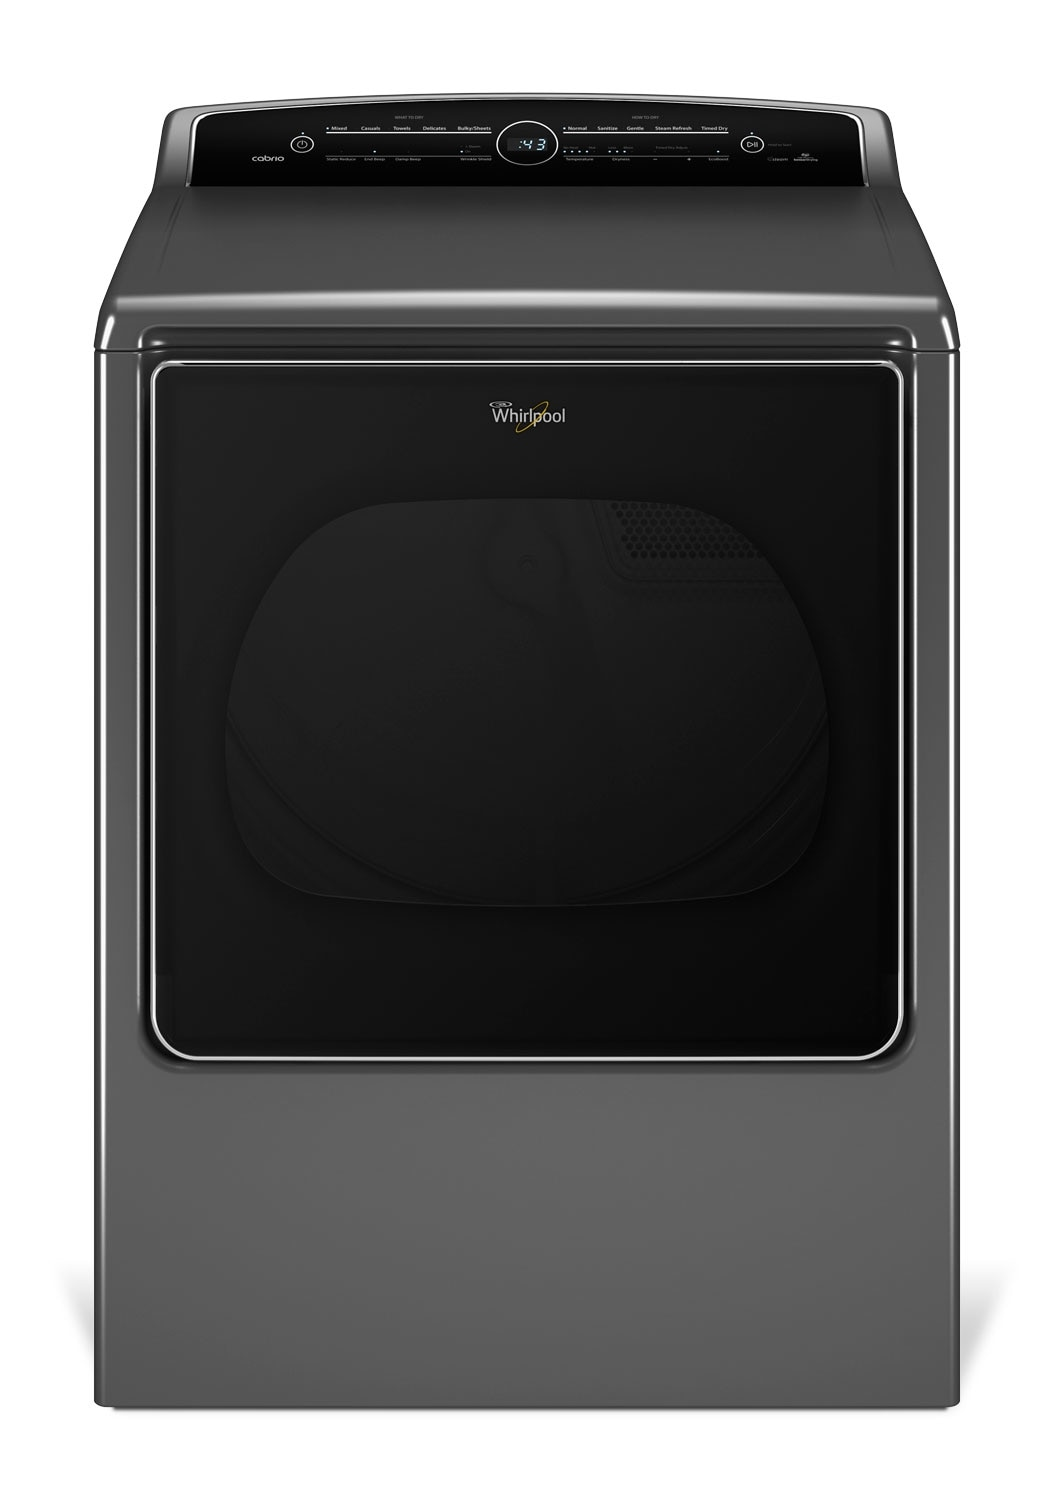 Washers and Dryers - Whirlpool Dryer (8.8 Cu. Ft.) YWED8500DC